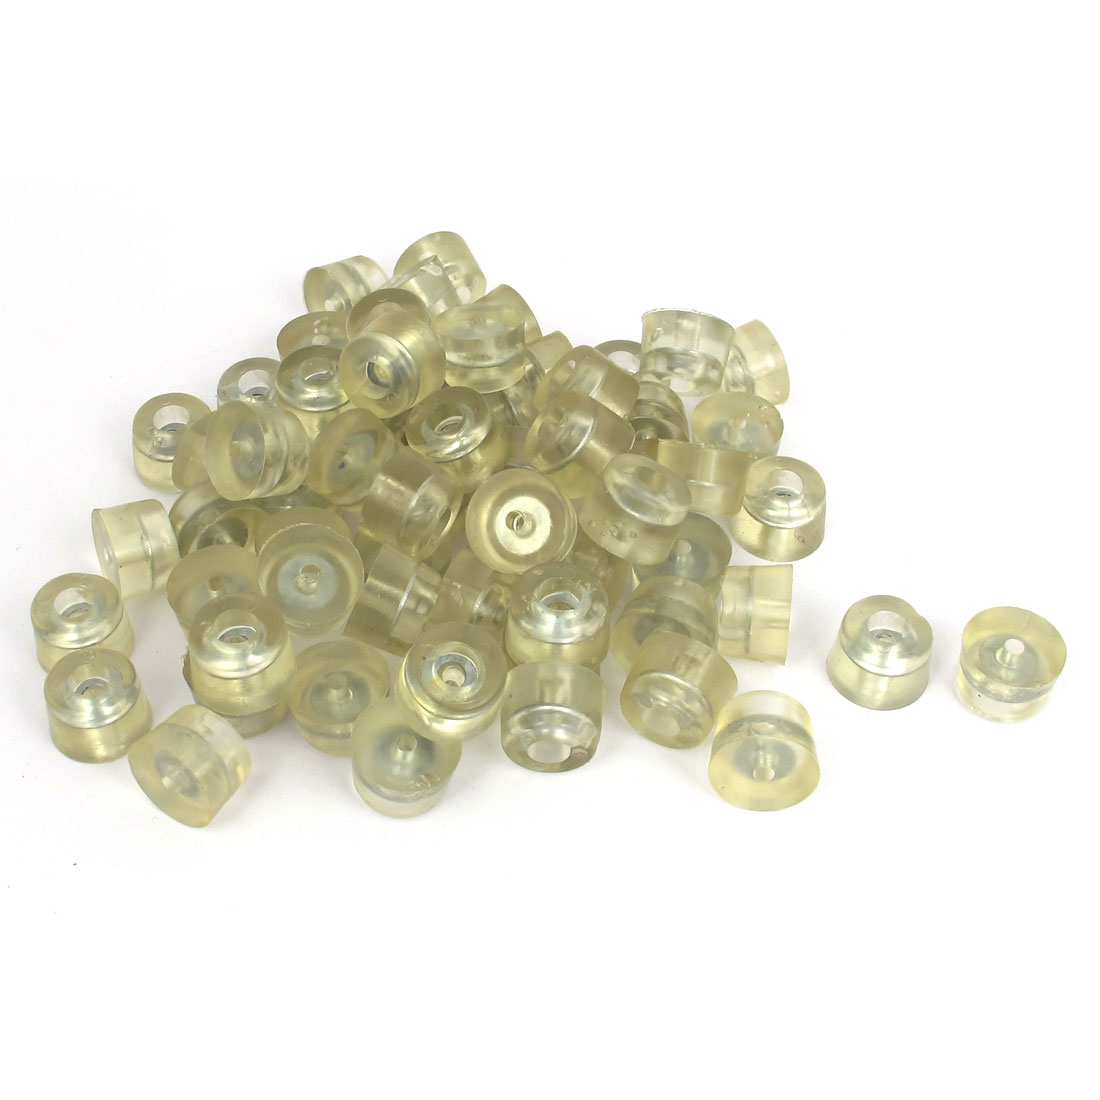 20mm Dia Anti-sliding Furniture Sofa Foot Pad Floor Protector 100pcs w Screws